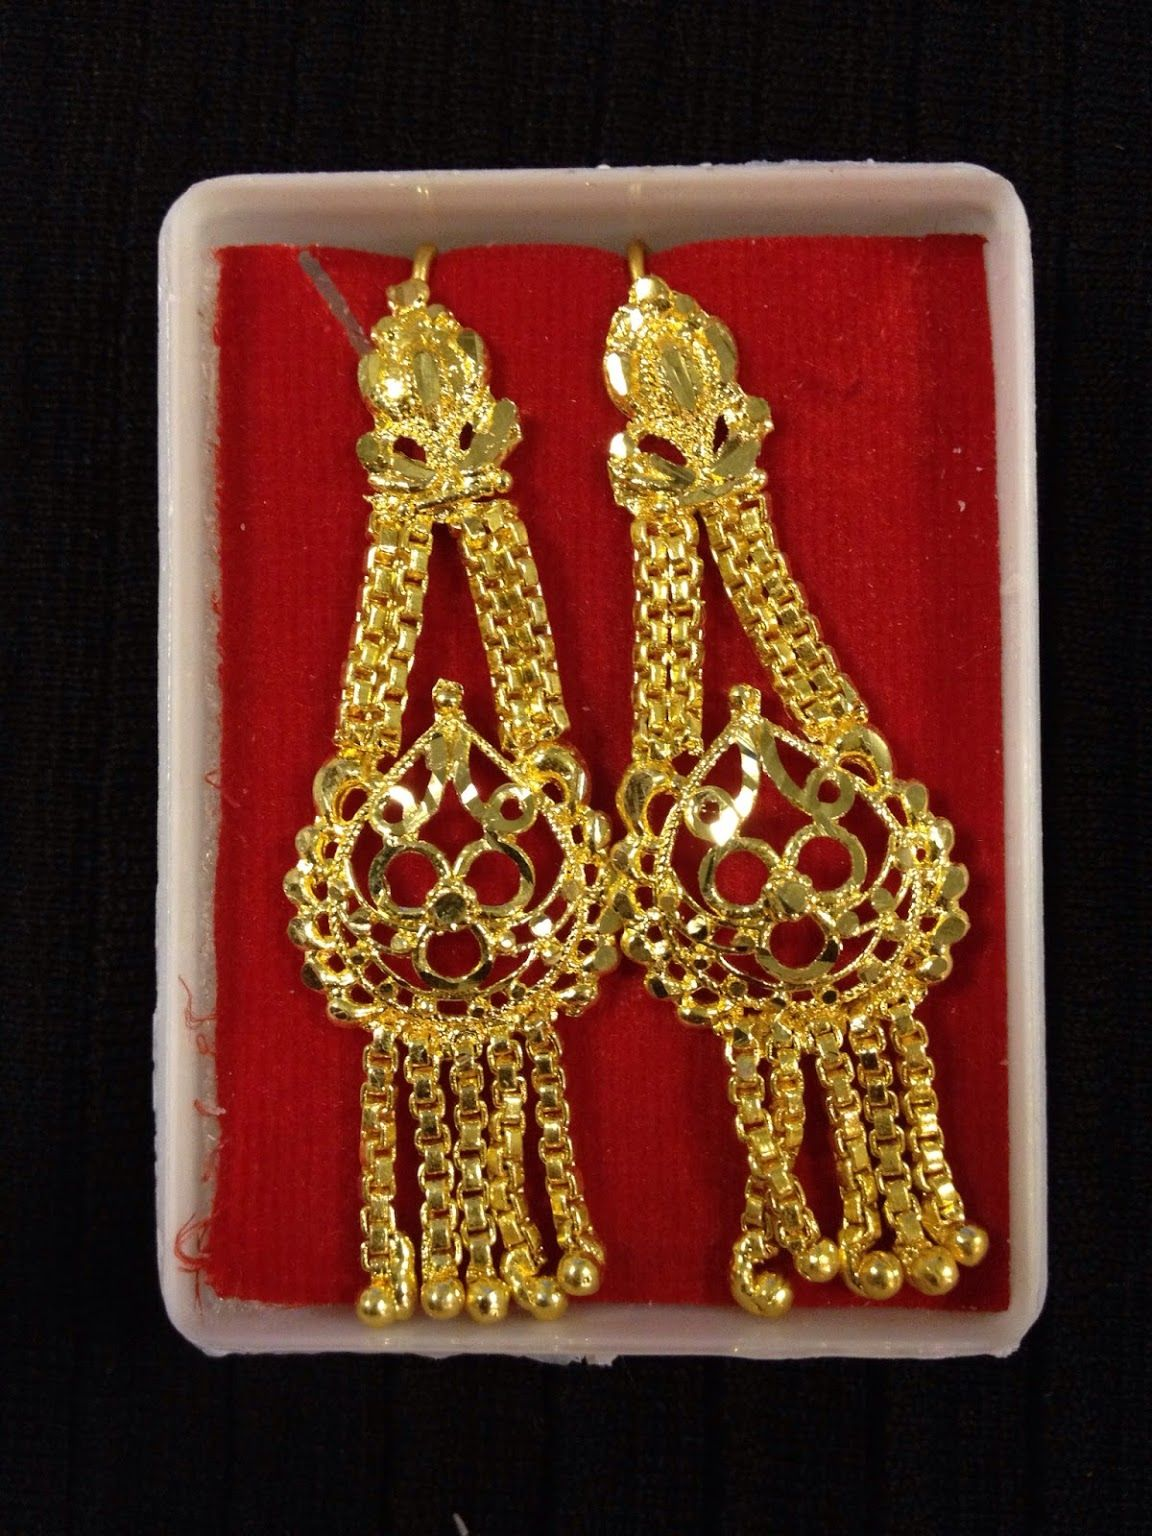 Indian jewelry - small dangle earrings | HDaccessories